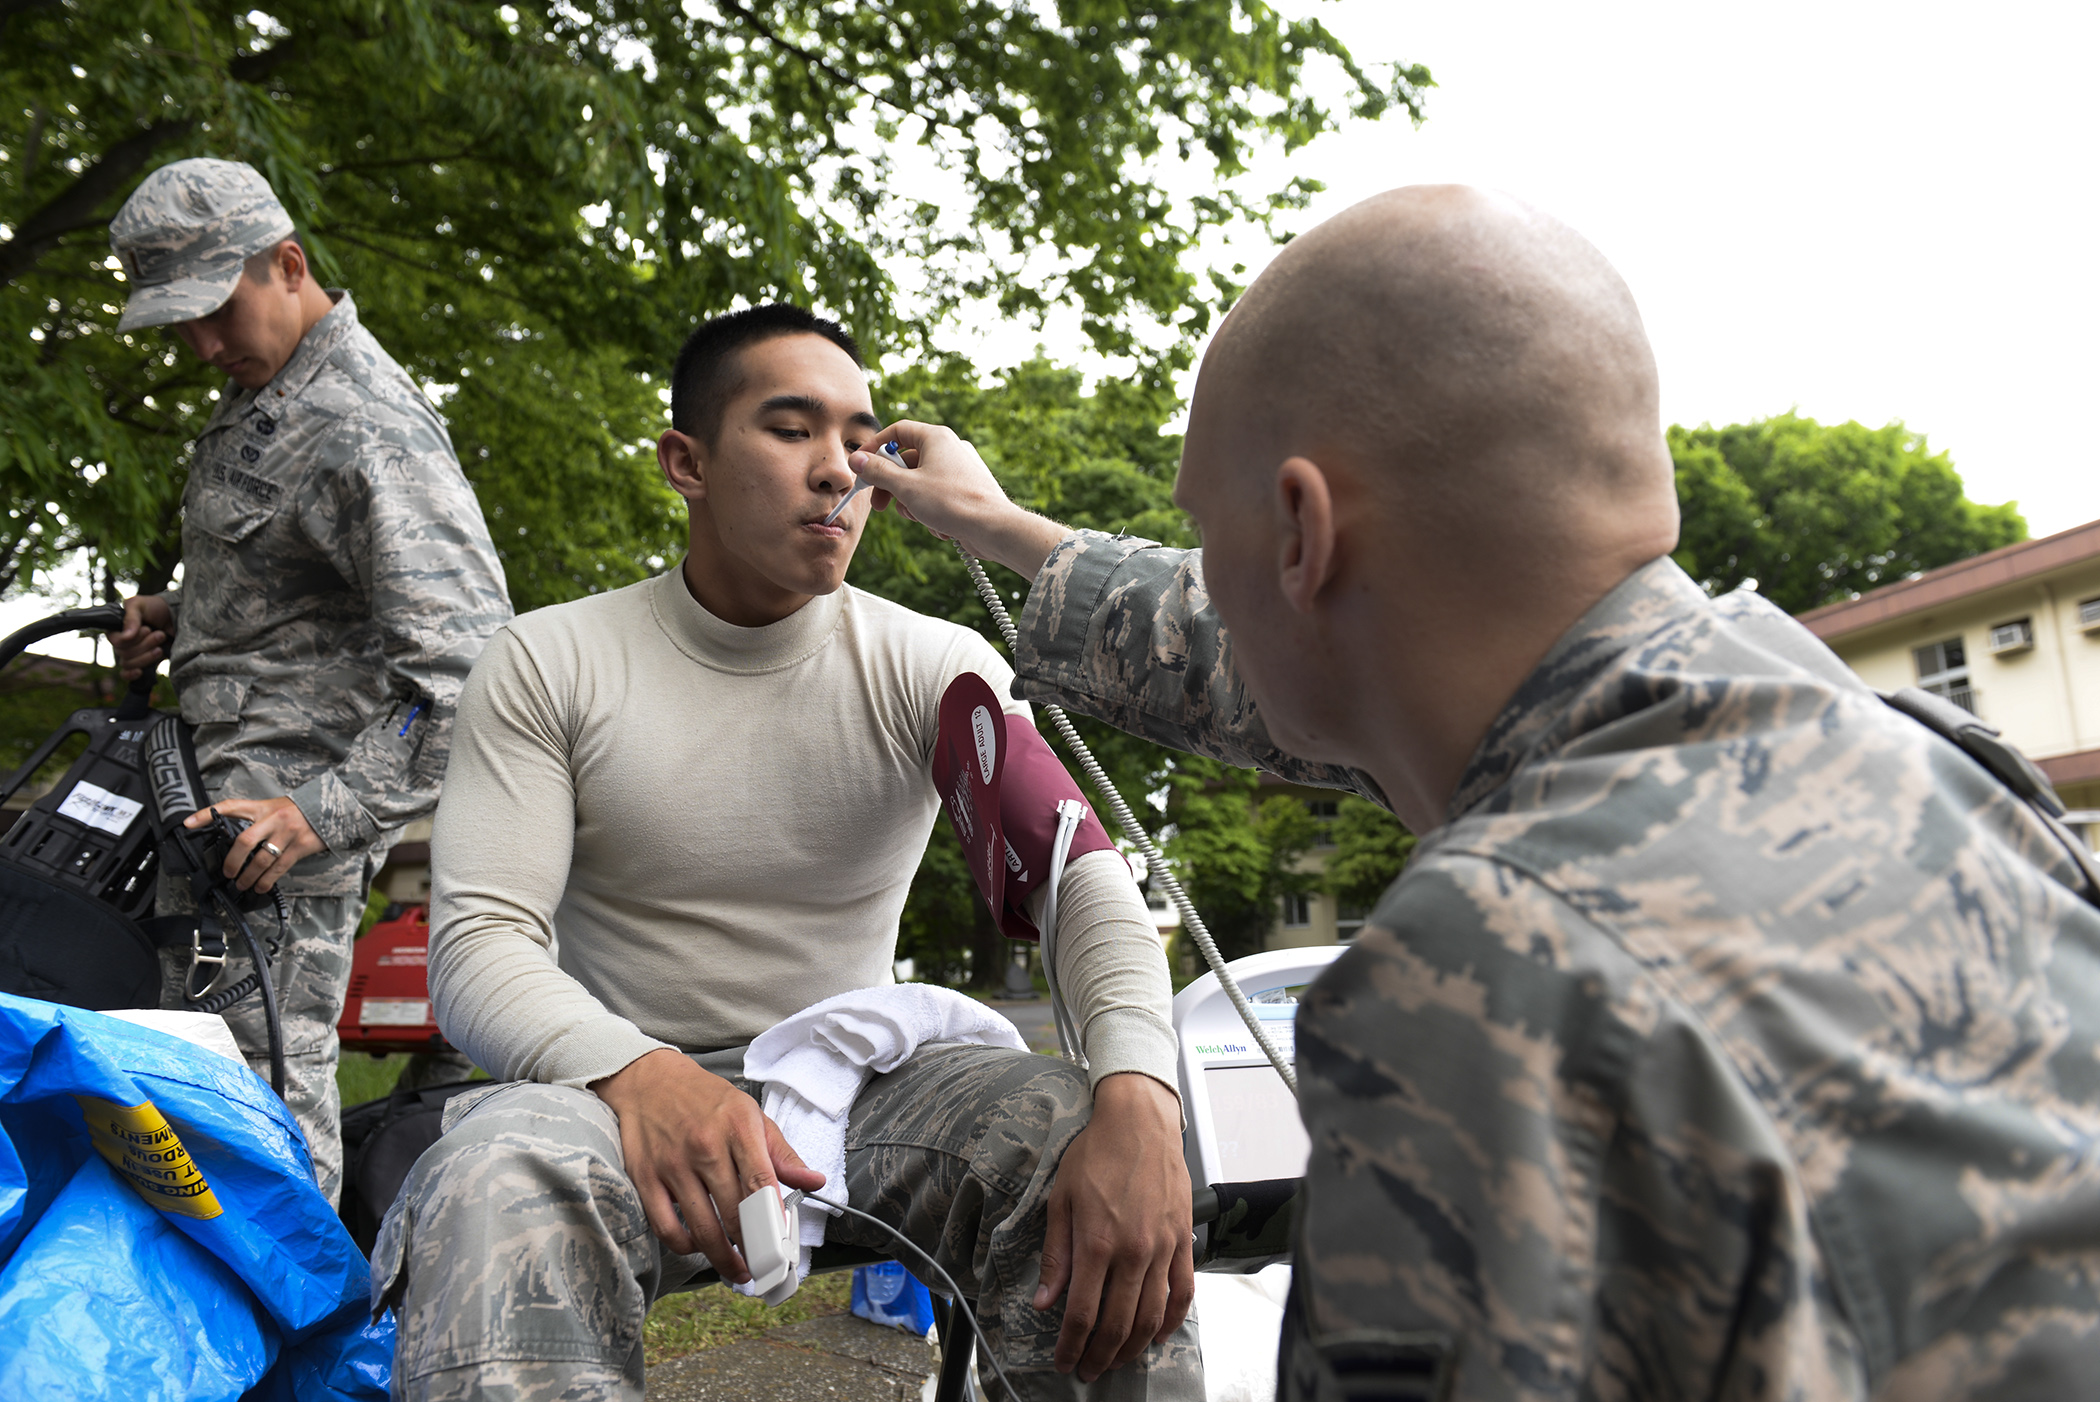 Staff Sgt. Benjamin Smith, right, 374th Aerospace Medicine Squadron NCO in charge of the flight medicine clinic, takes vitals from Senior Airman Vonfernan Carios, 374 AMDS bioenvironmental engineering technician, May 6, 2015, at Yokota Air Base, Japan. Emergency responders were examined after performing under potentially stressful and harmful conditions at the scene of a mock environmental hazard. (U.S. Air Force photo by Airman 1st Class Elizabeth Baker/Released)